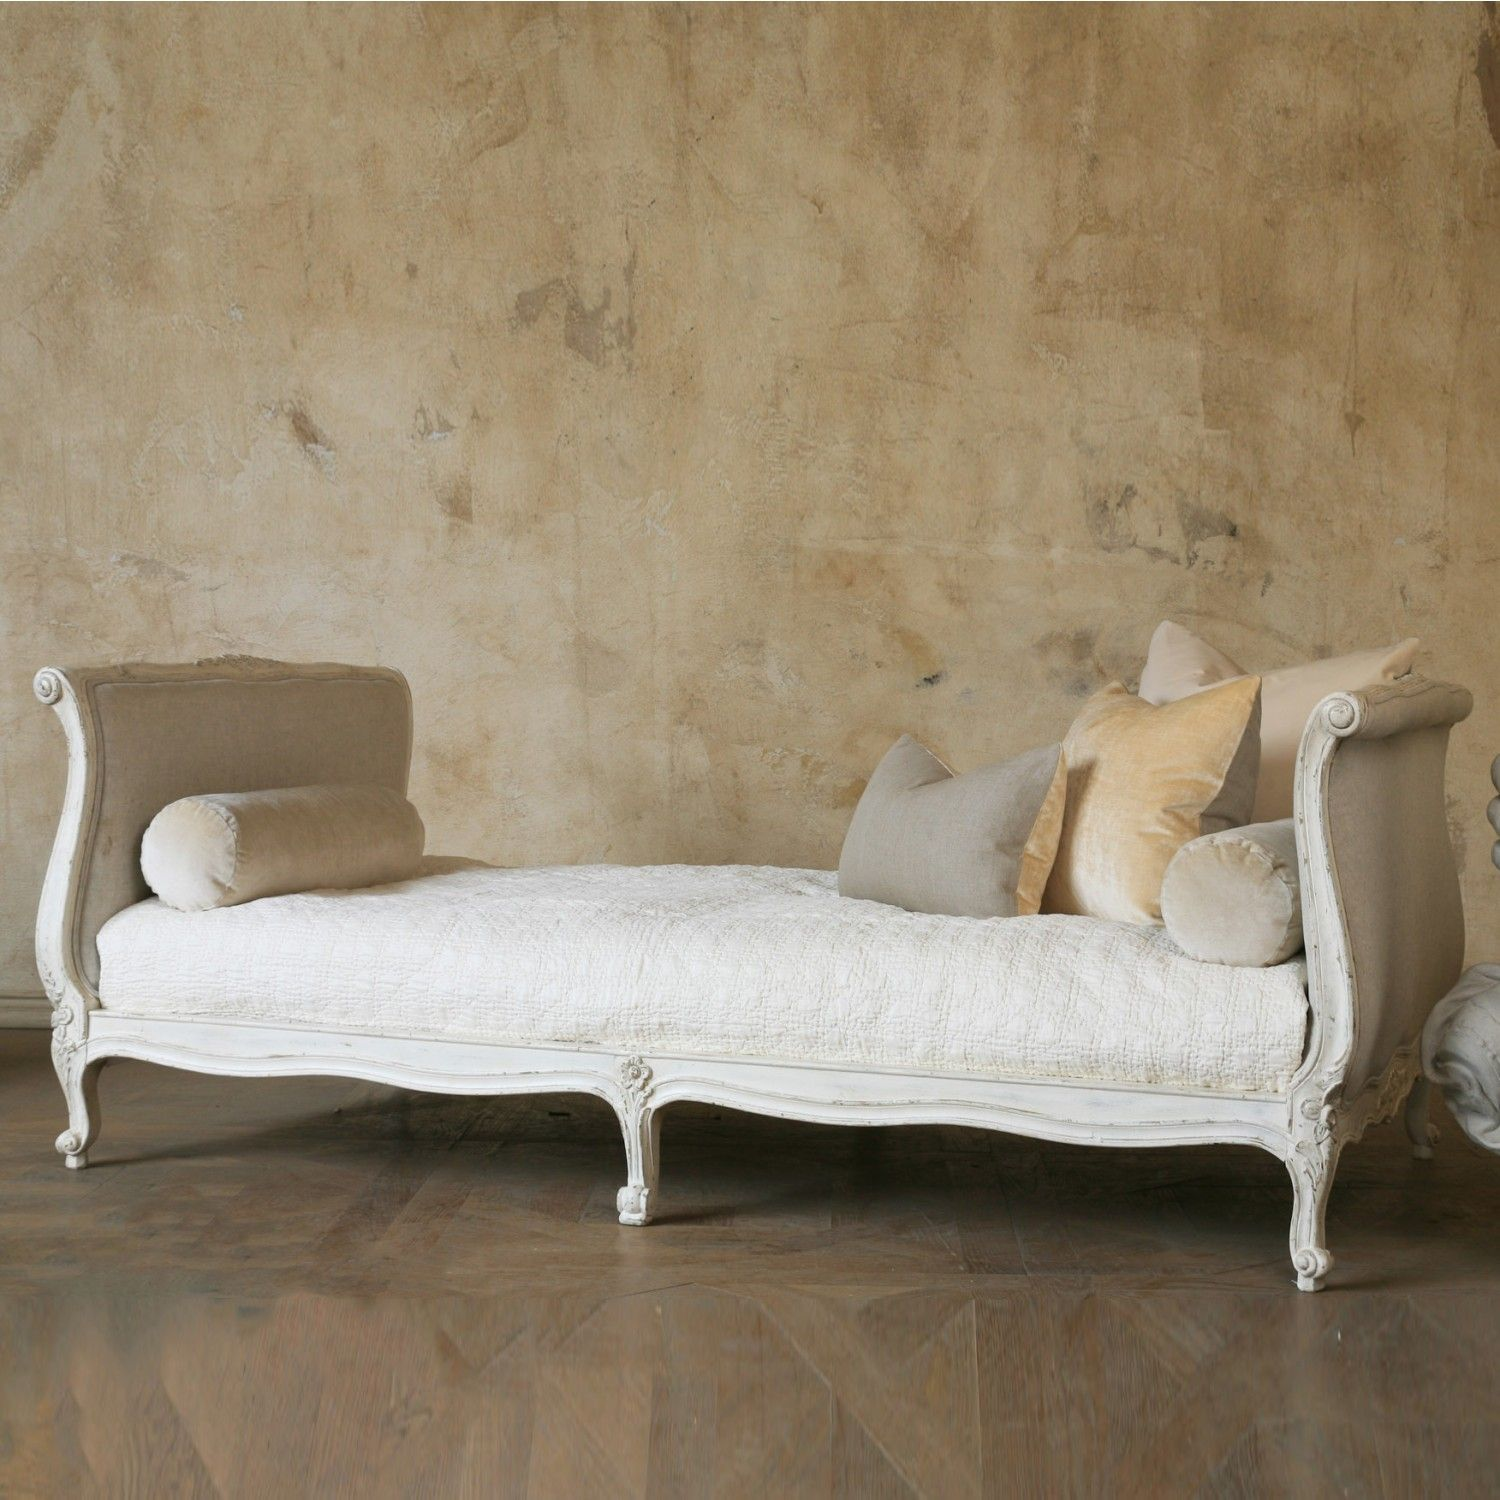 Twin Clignancourt Daybed in Swedish Antique White $2,745.00 #thebellacottage